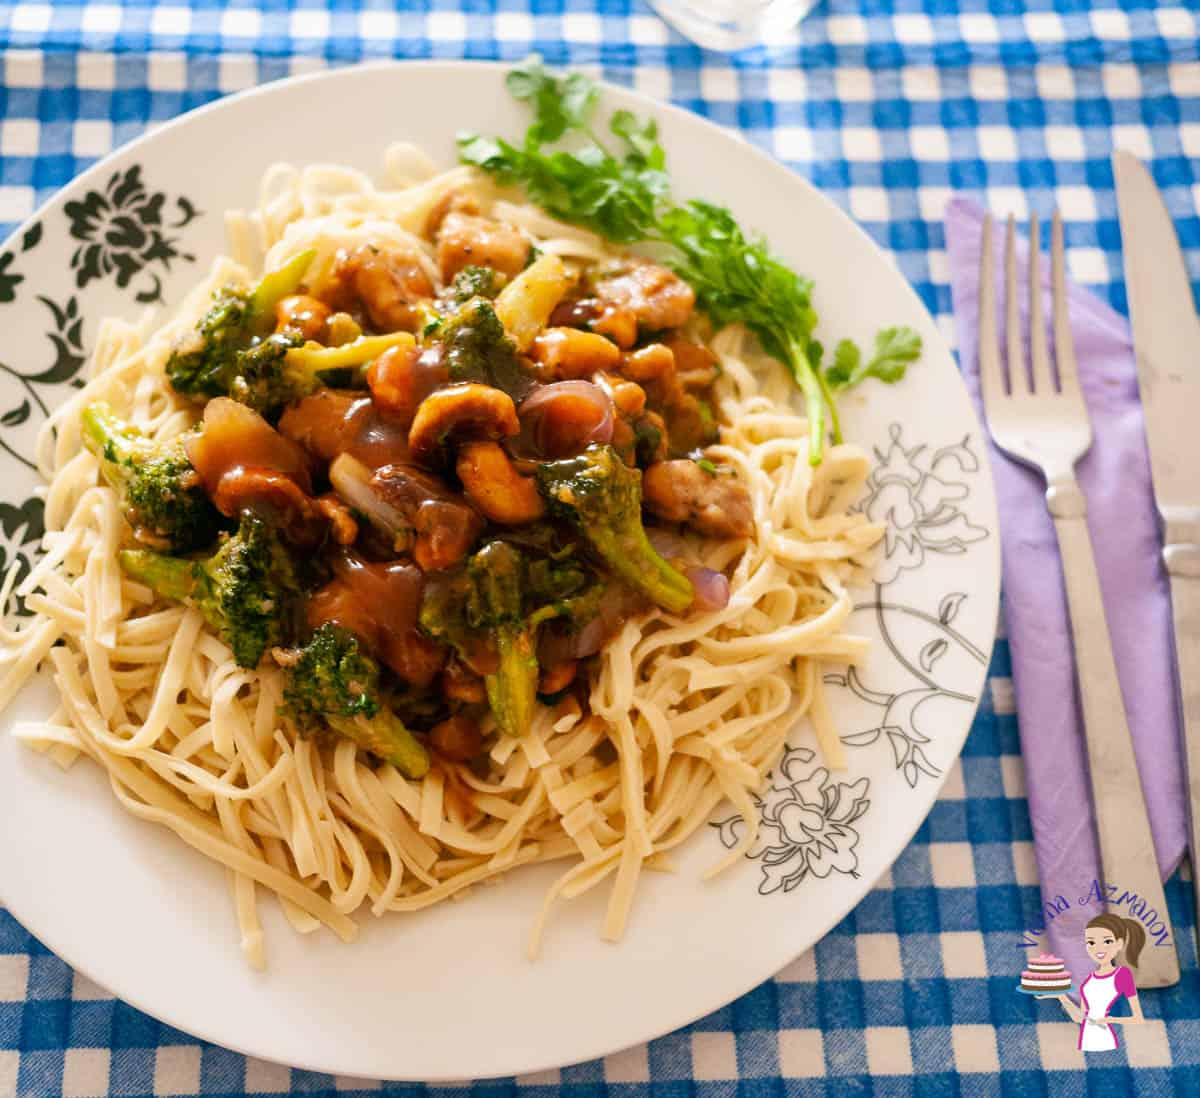 A plate with stir fry and noodles